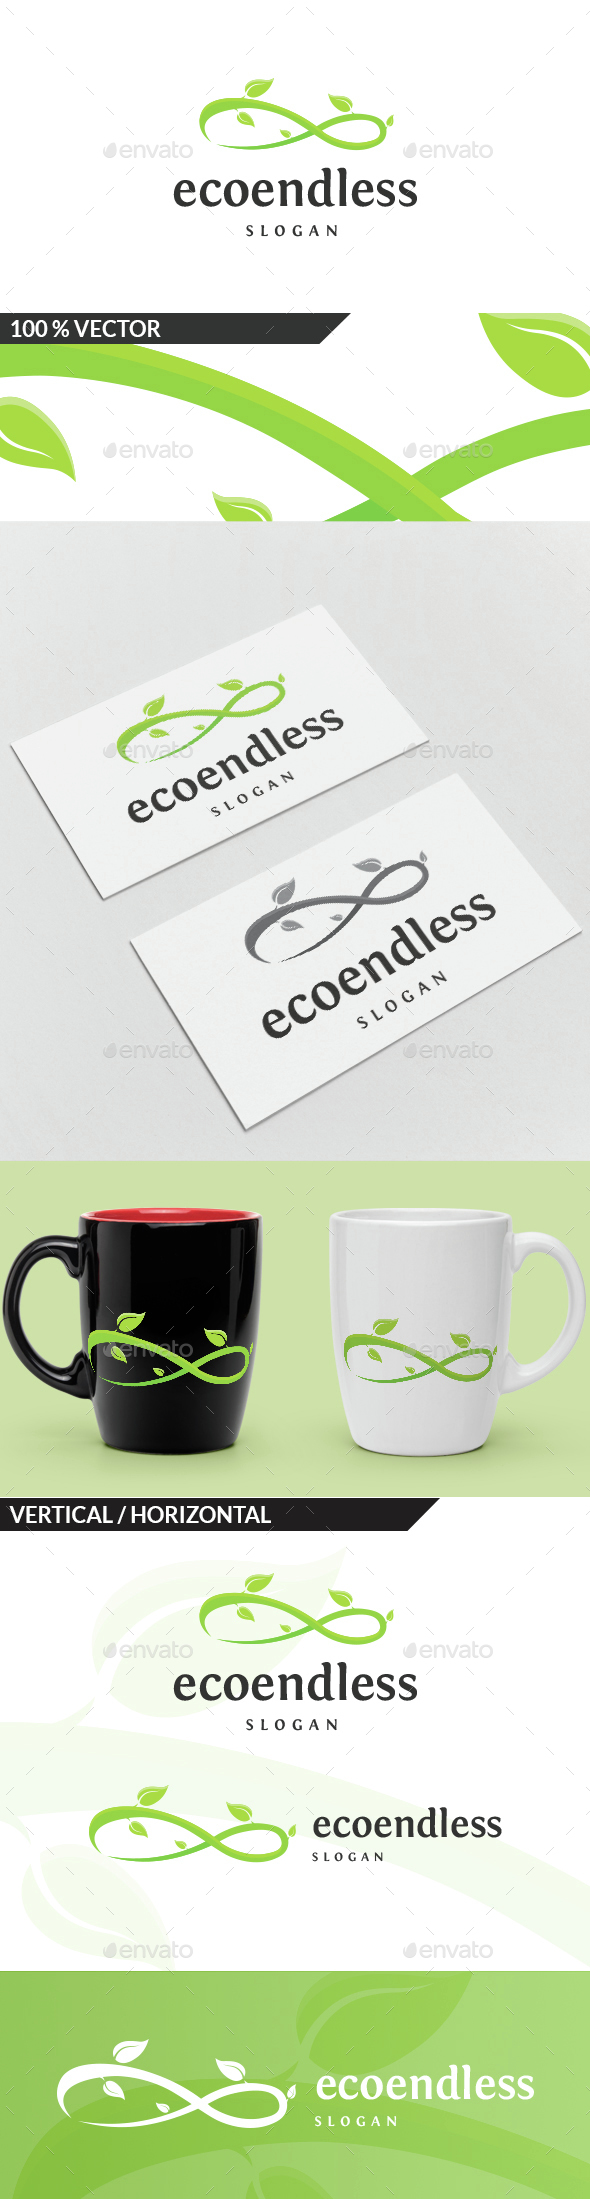 Eco Endless Logo - Nature Logo Templates